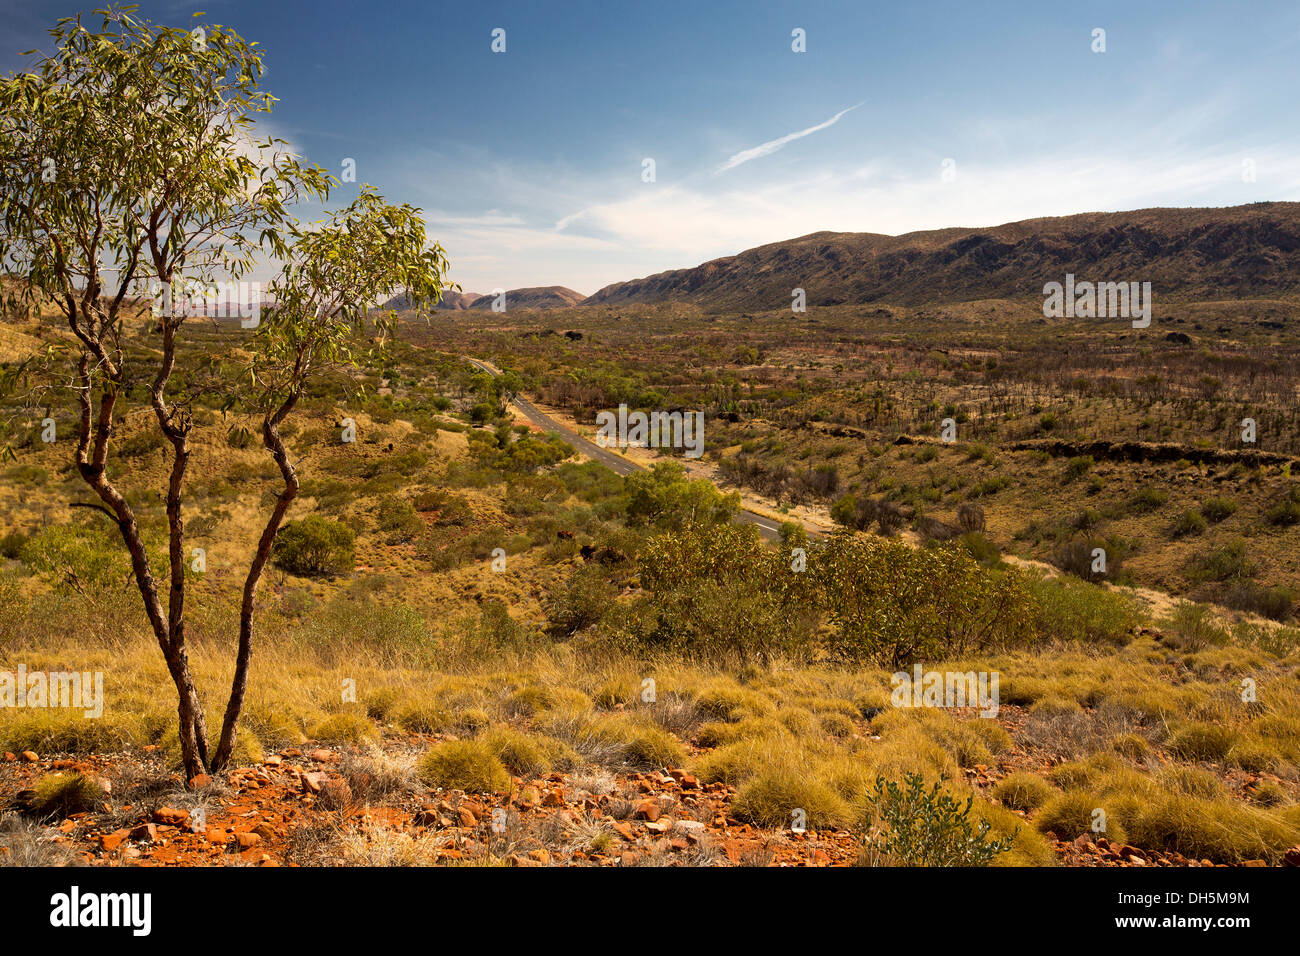 View of vast outback landscape, road, and West MacDonnell Ranges from lookout near Alice Springs in Northern Territory Australia - Stock Image